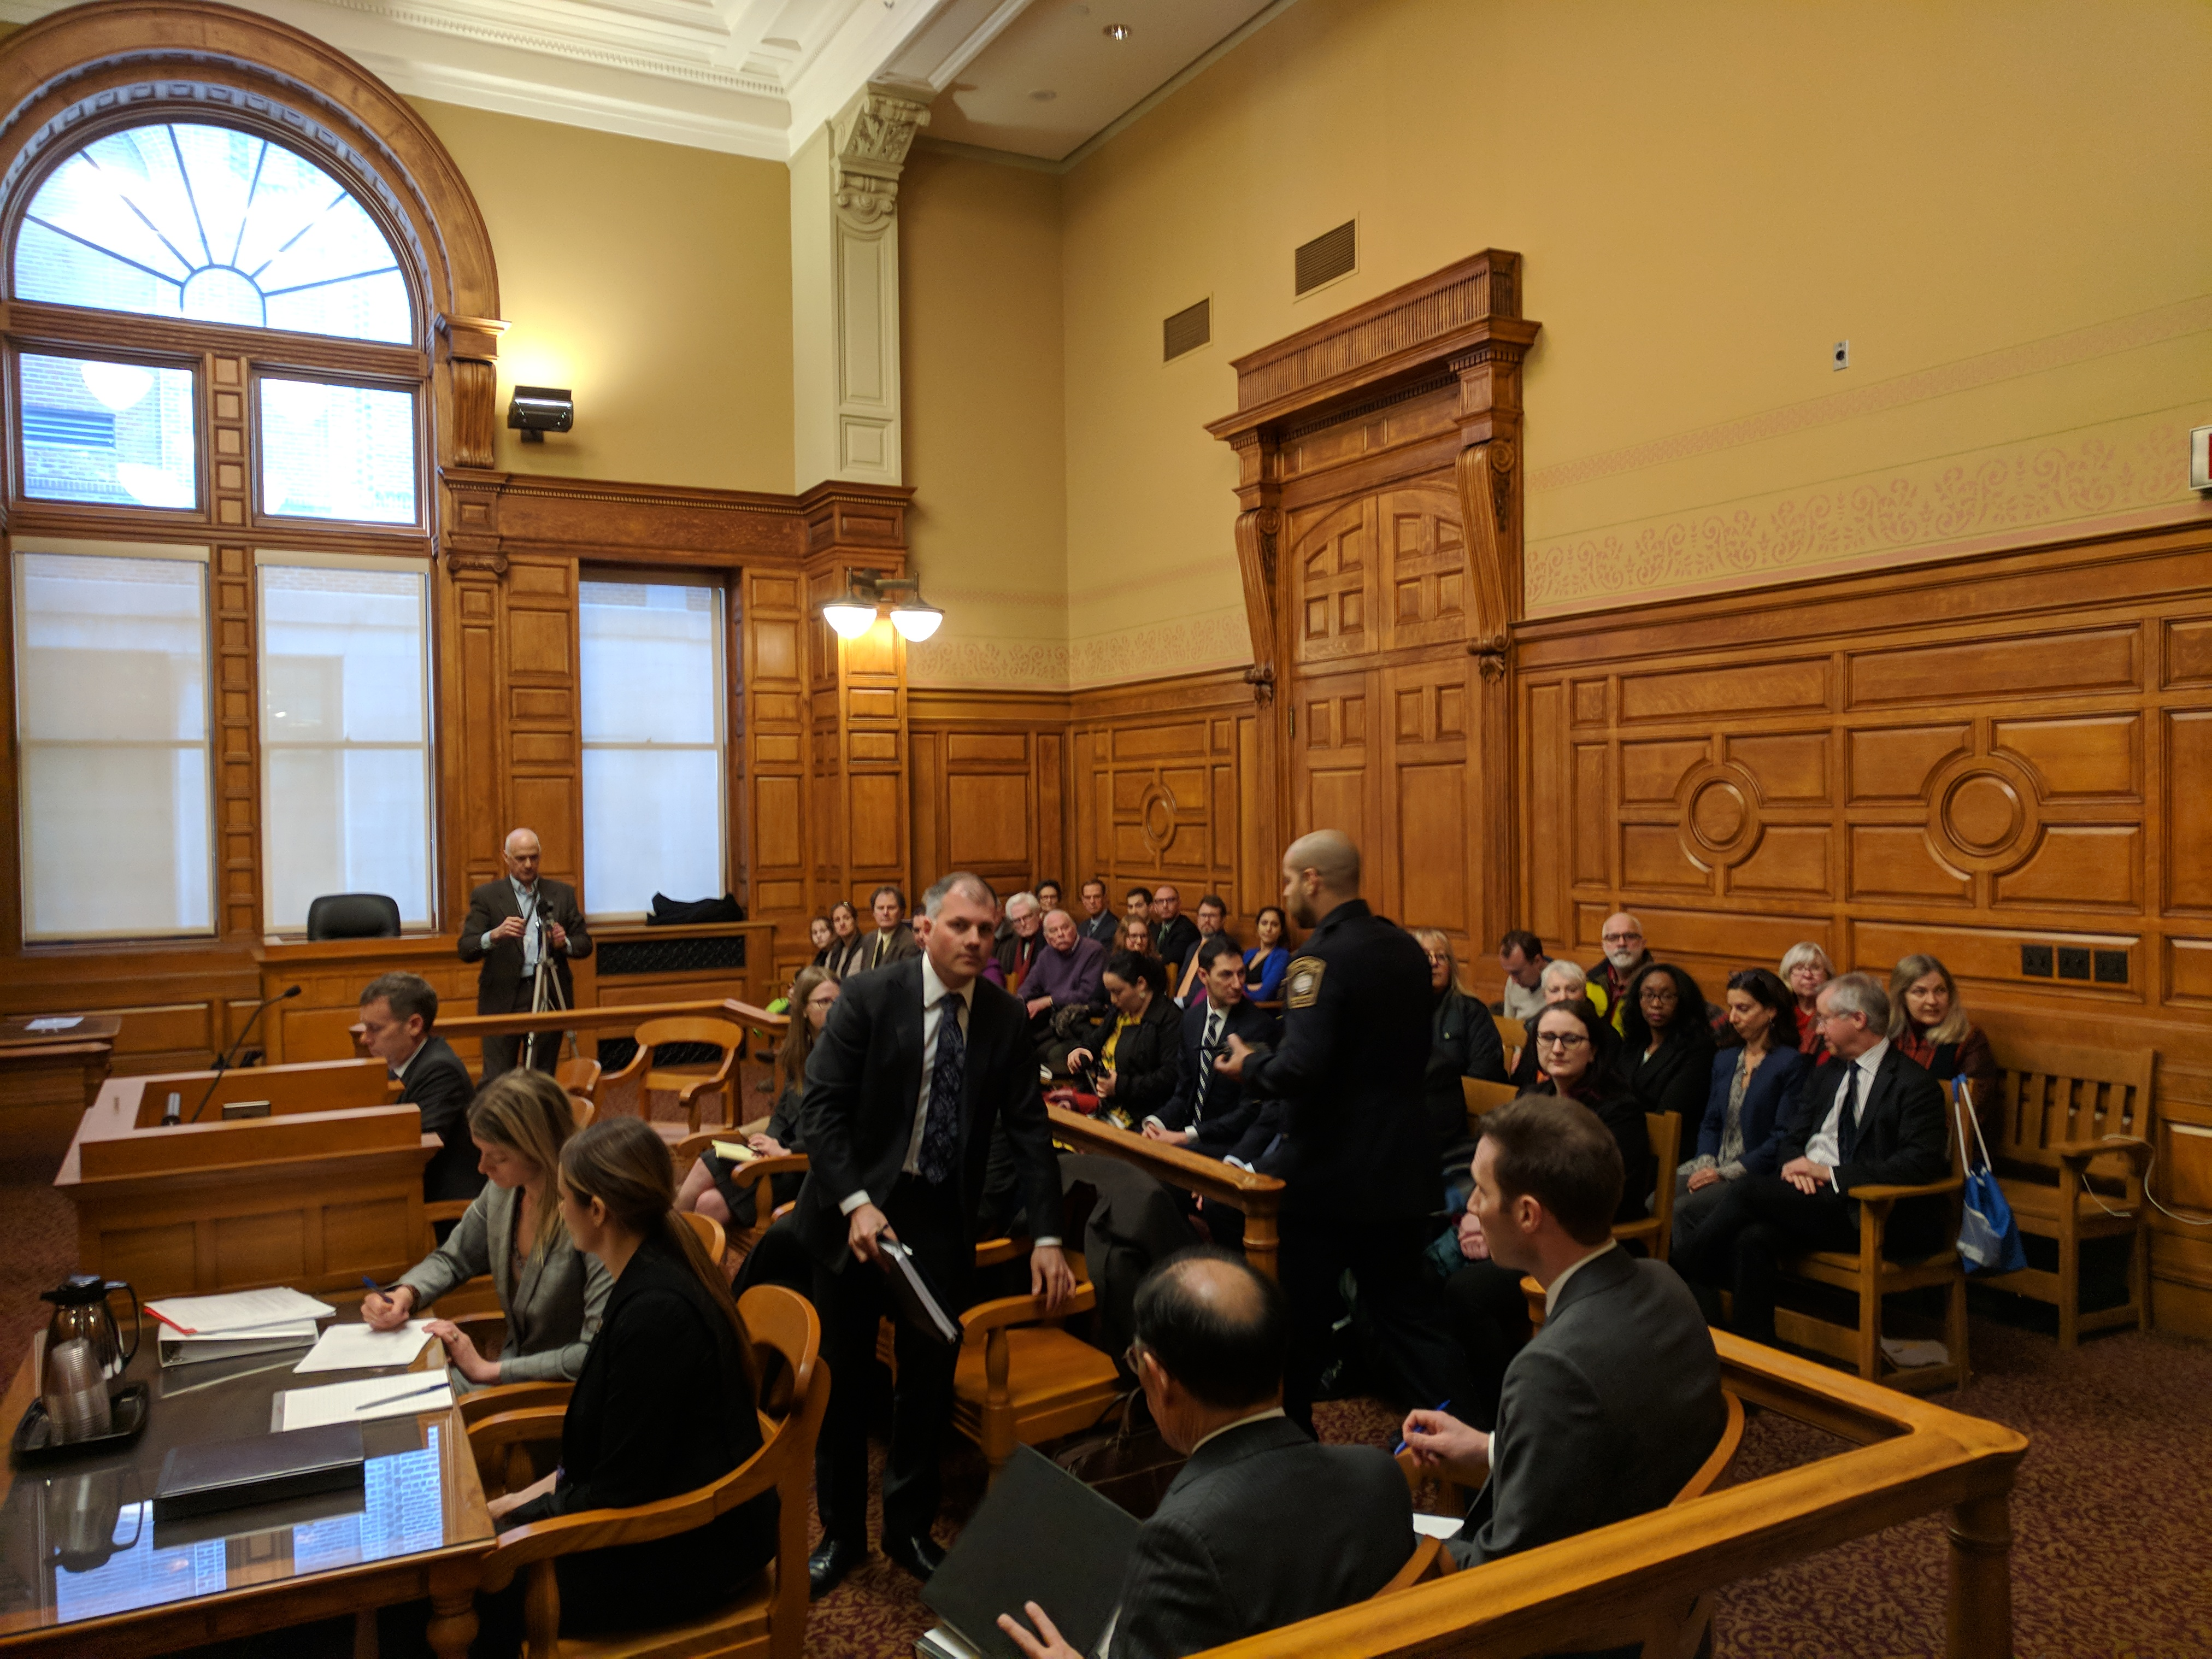 COURTROOM FILLING BEFORE START -Boston MA John Adams Courthouse ...